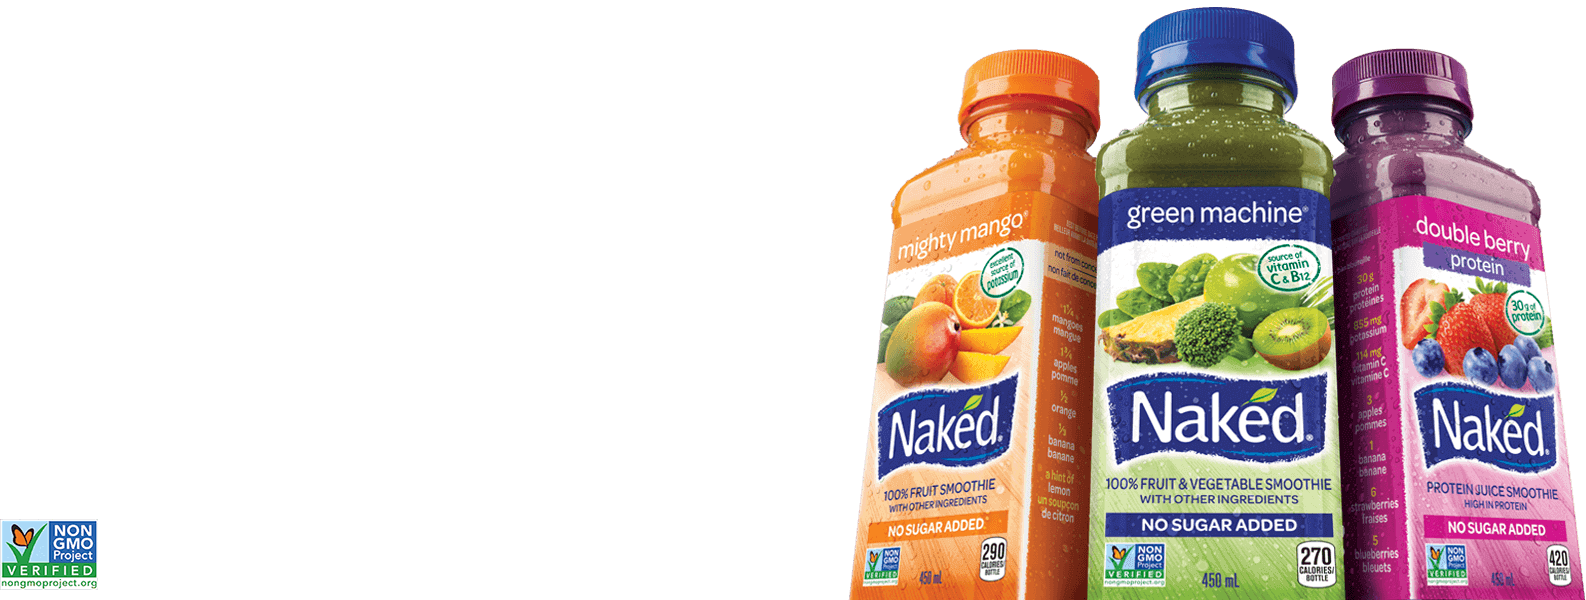 3 Naked package products